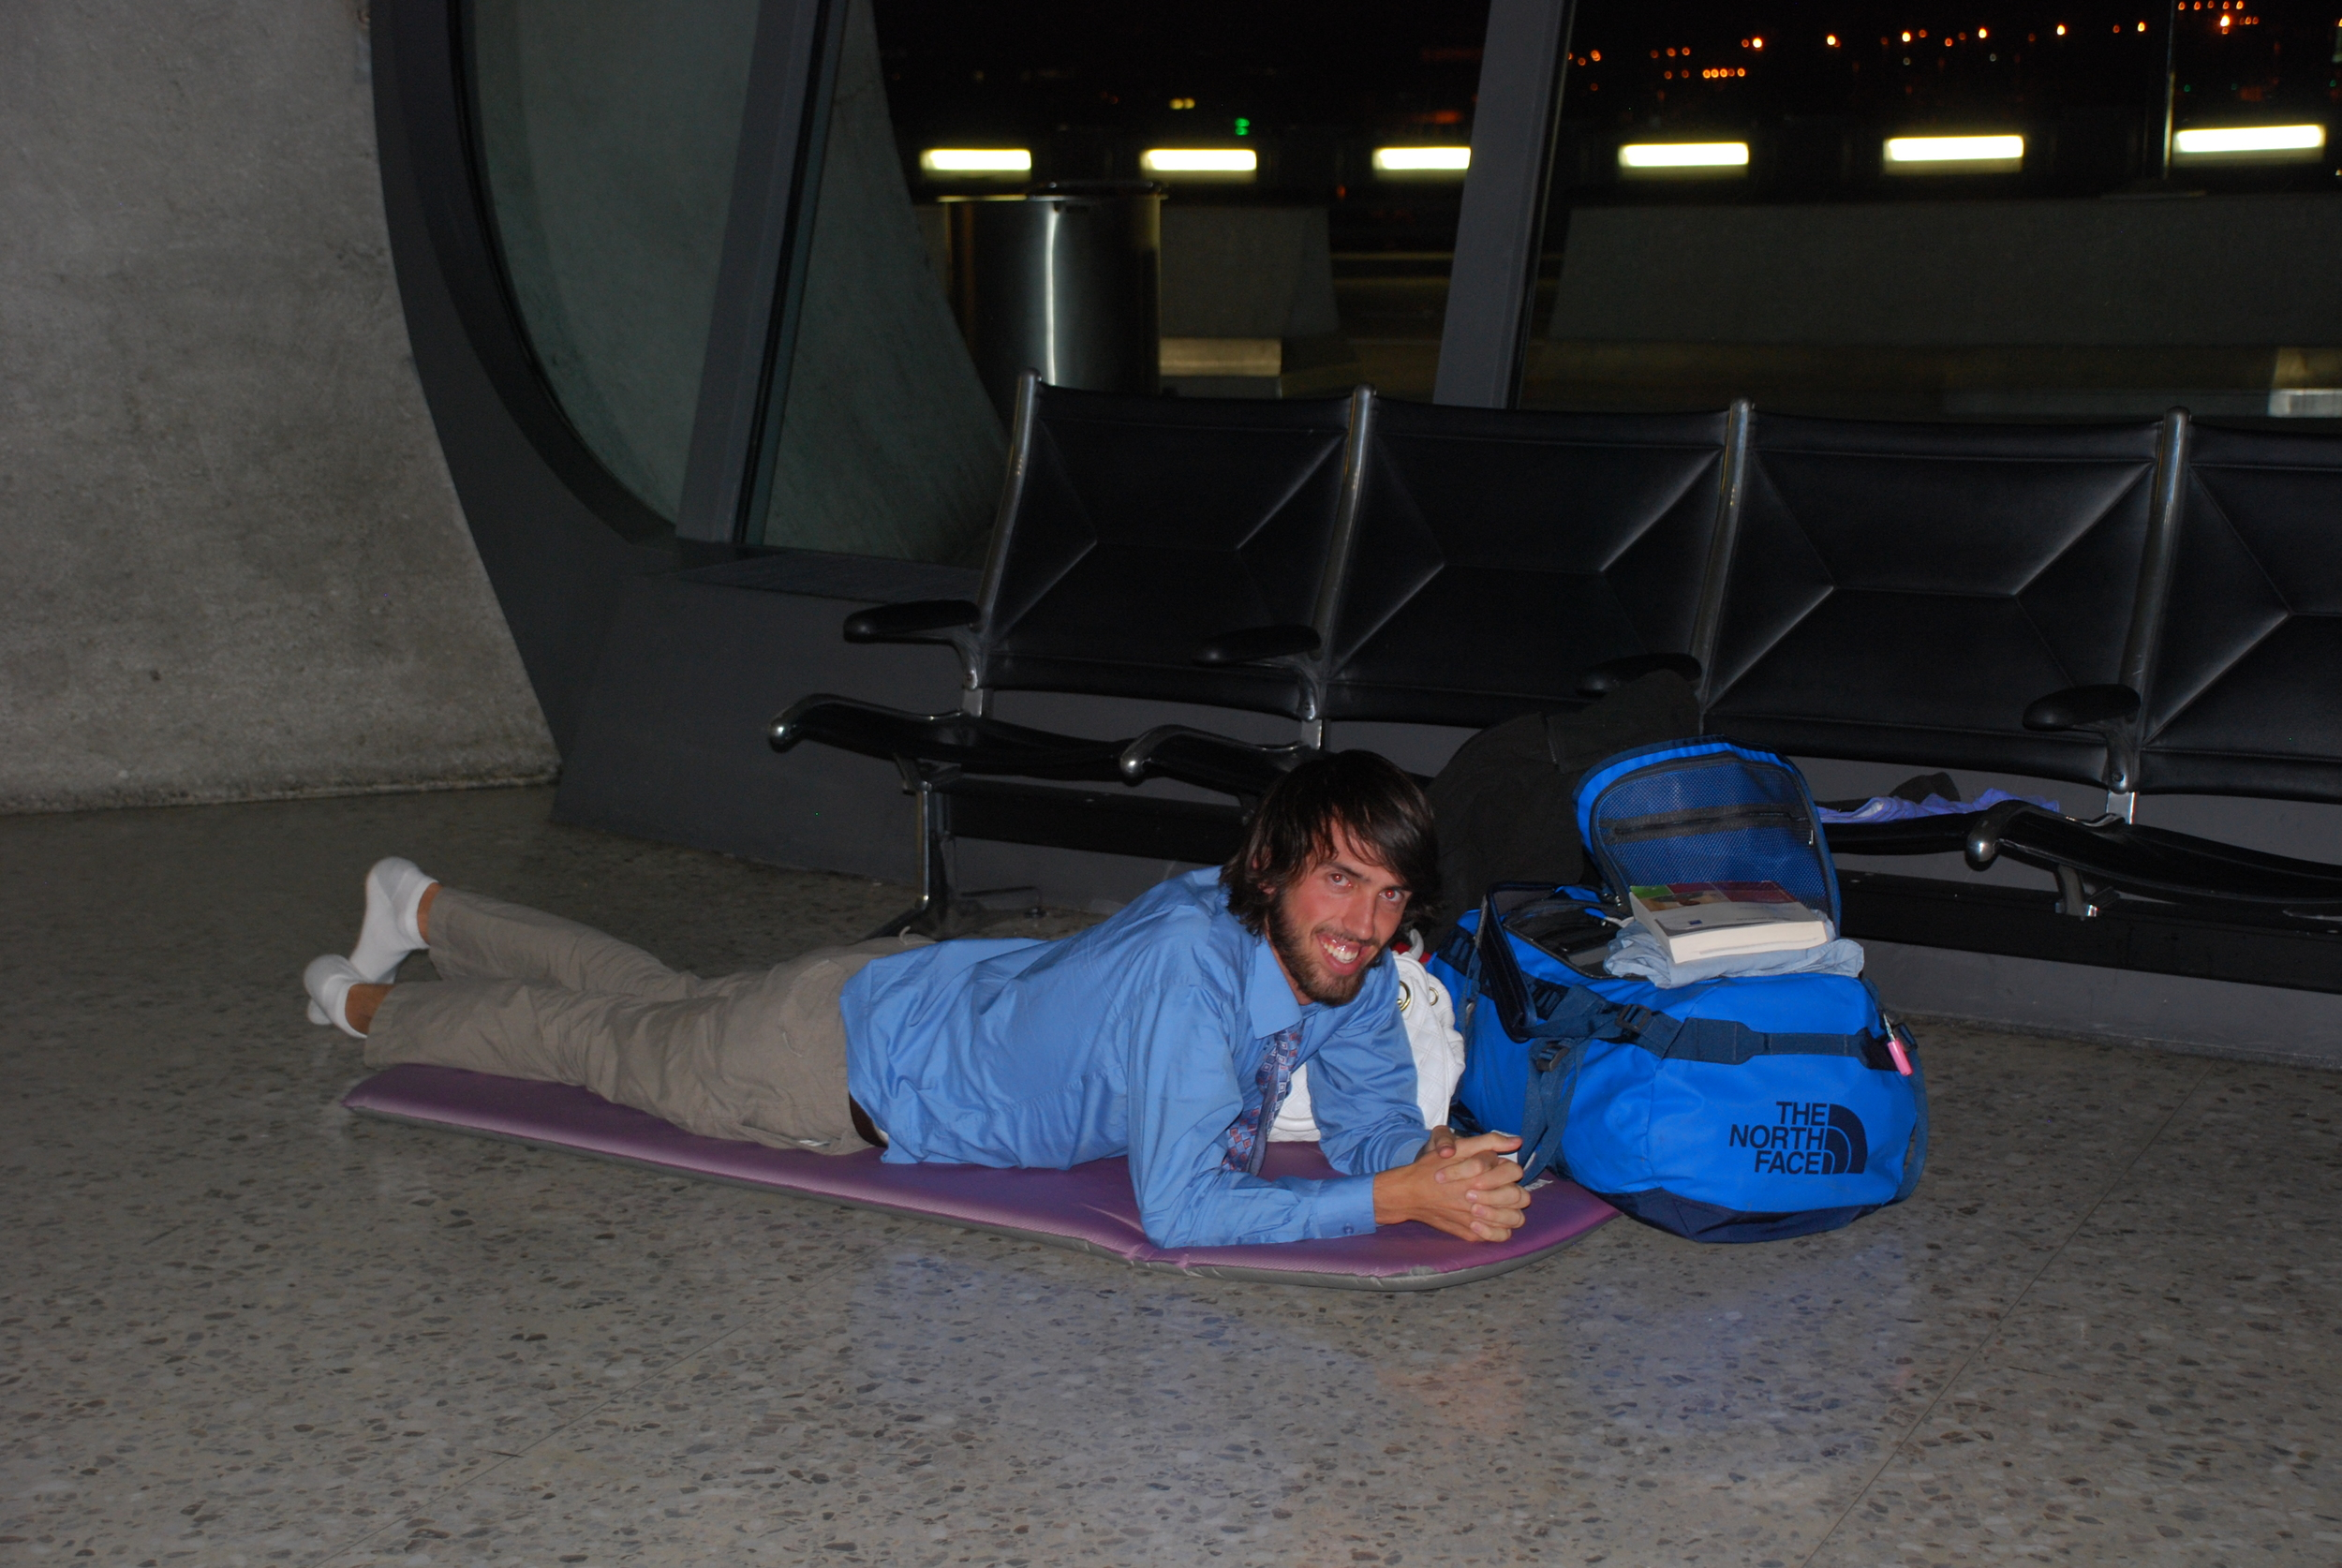 Putting my Therm-a-Rest to use in the airport in D.C. on our way to Africa